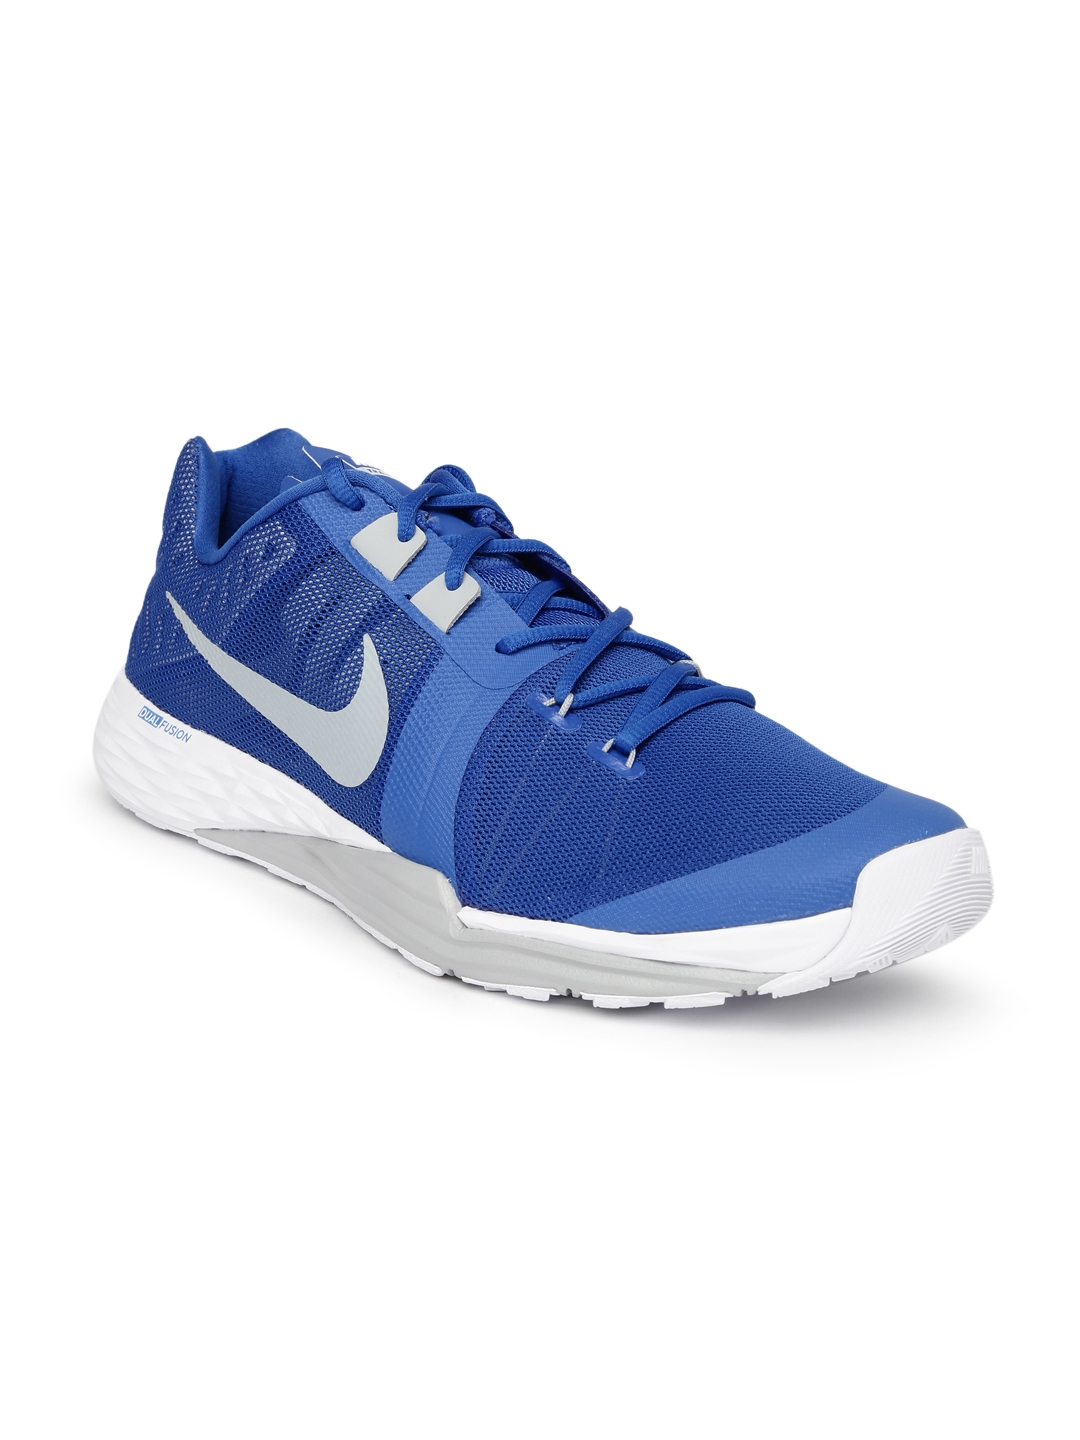 Buy Nike Men Blue Prime Iron DF Training Shoes - Sports Shoes for ... 9f8945e9bd